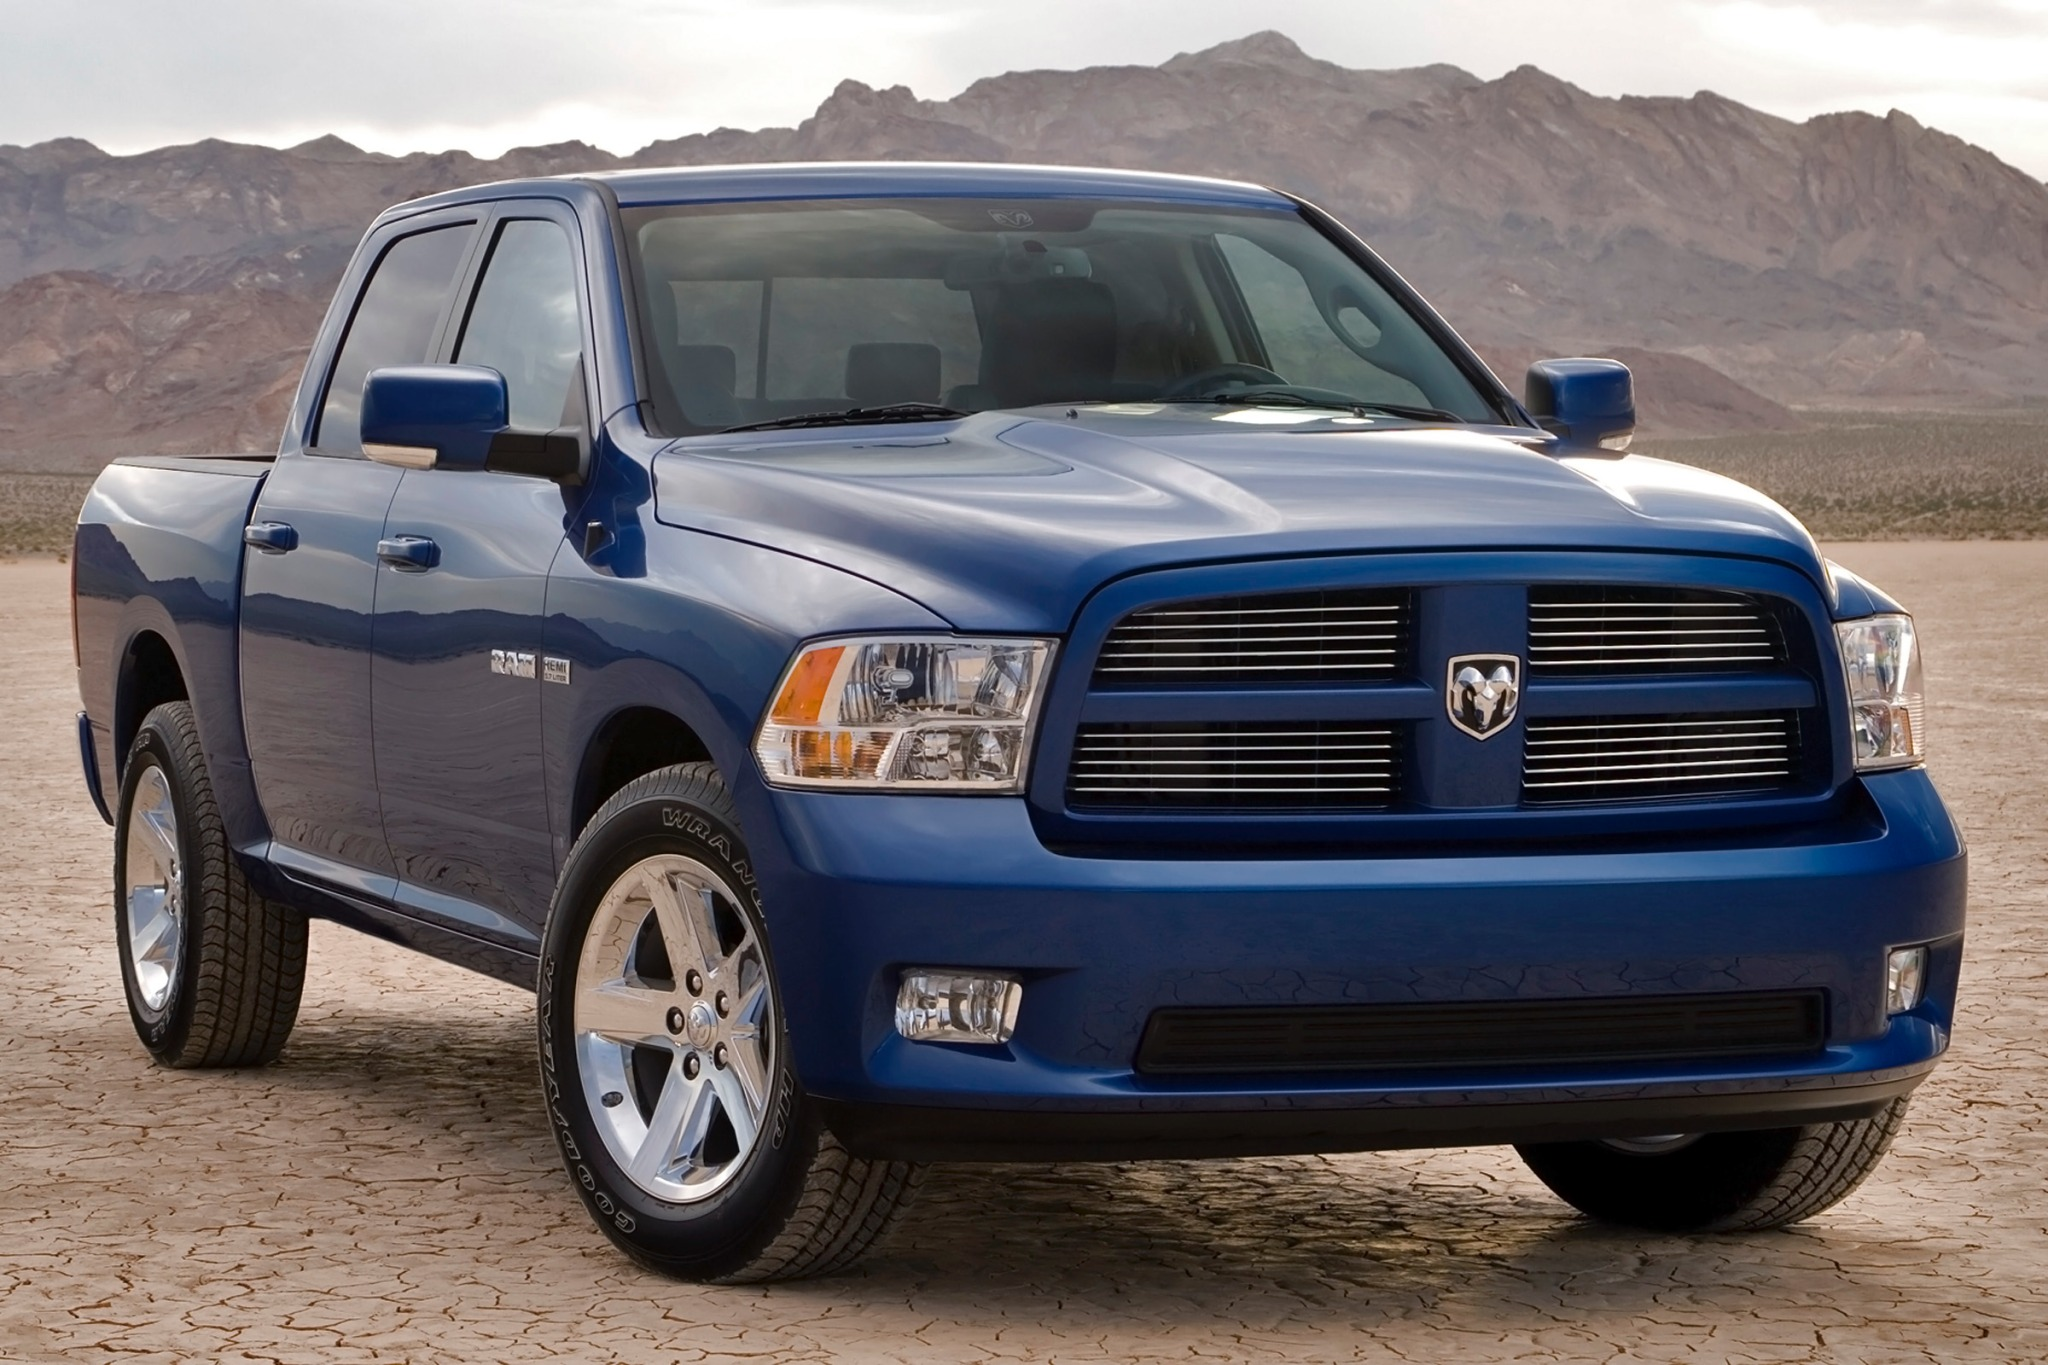 2010 dodge ram pickup 1500 image 2. Black Bedroom Furniture Sets. Home Design Ideas